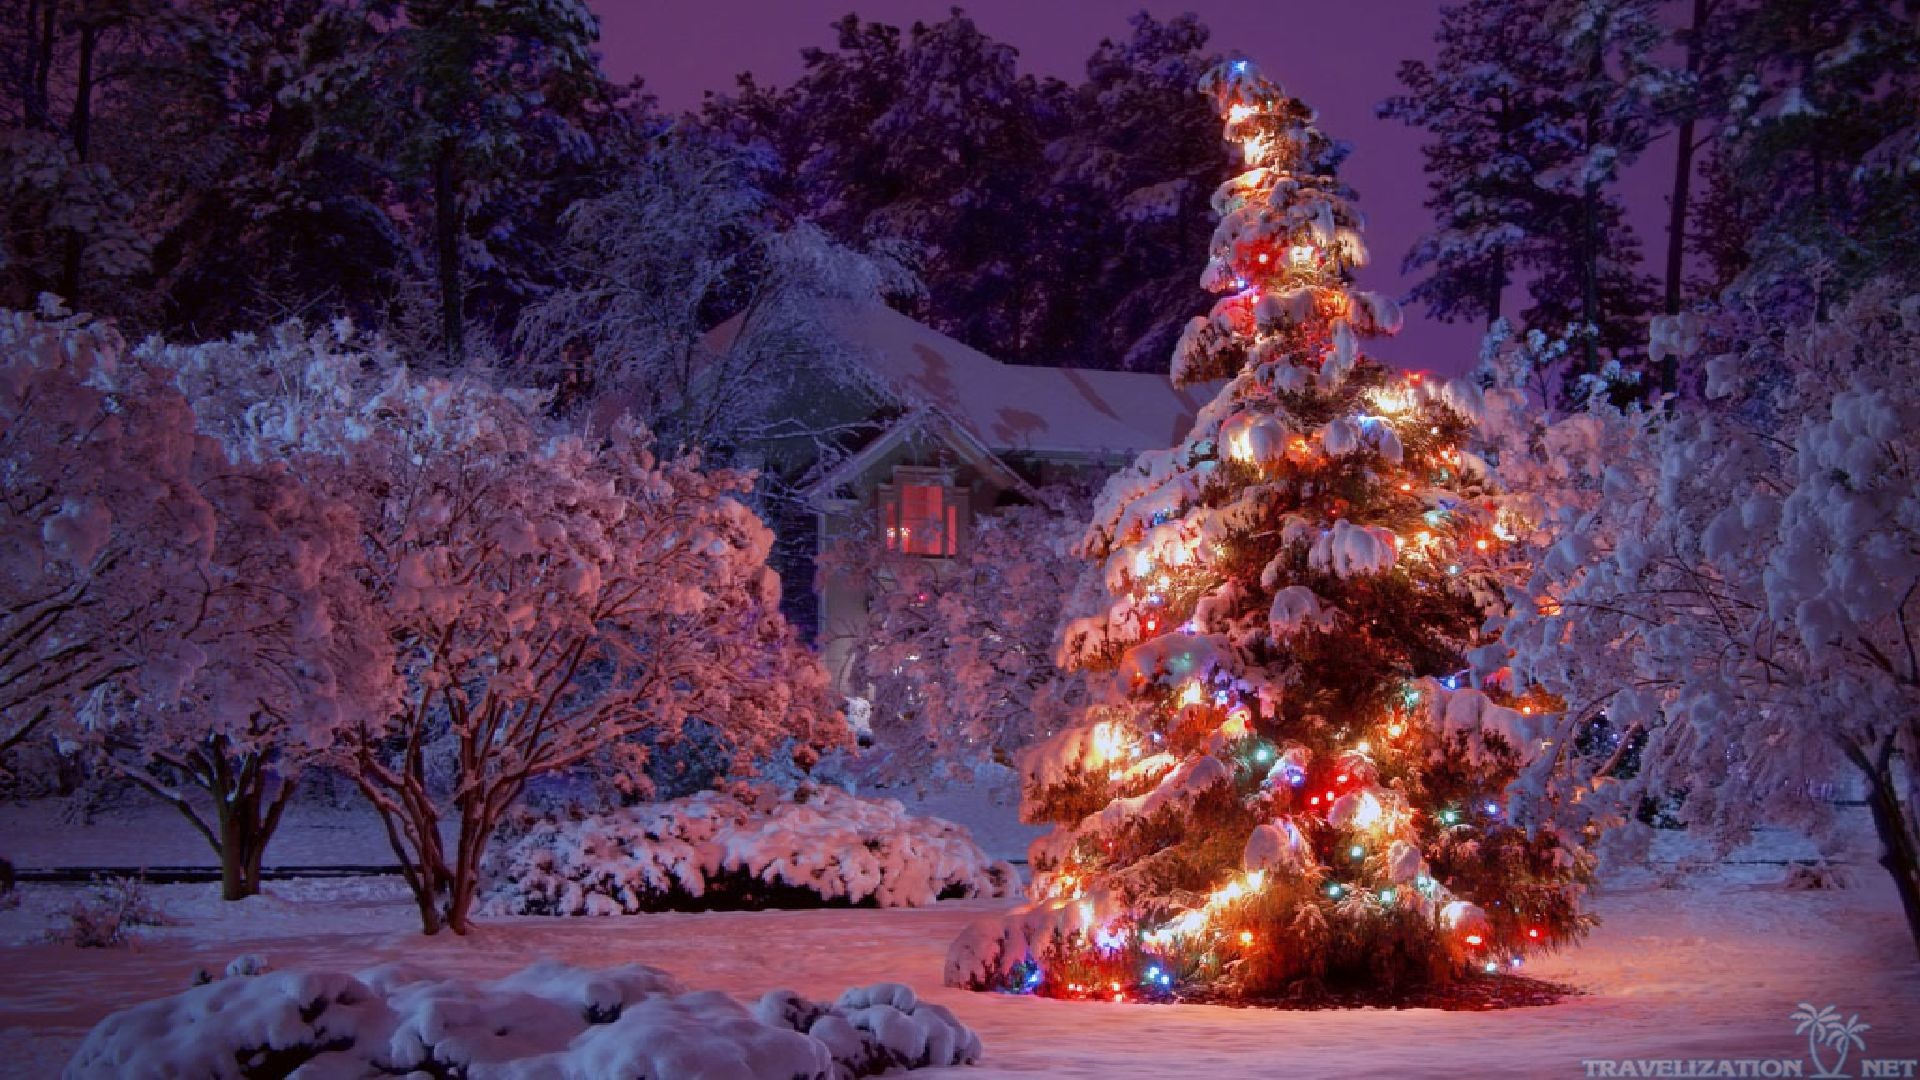 A collection HD Wallpaper From Gallsource.com   HD Wallpaper   Pinterest    Hd wallpaper and Hd backgrounds